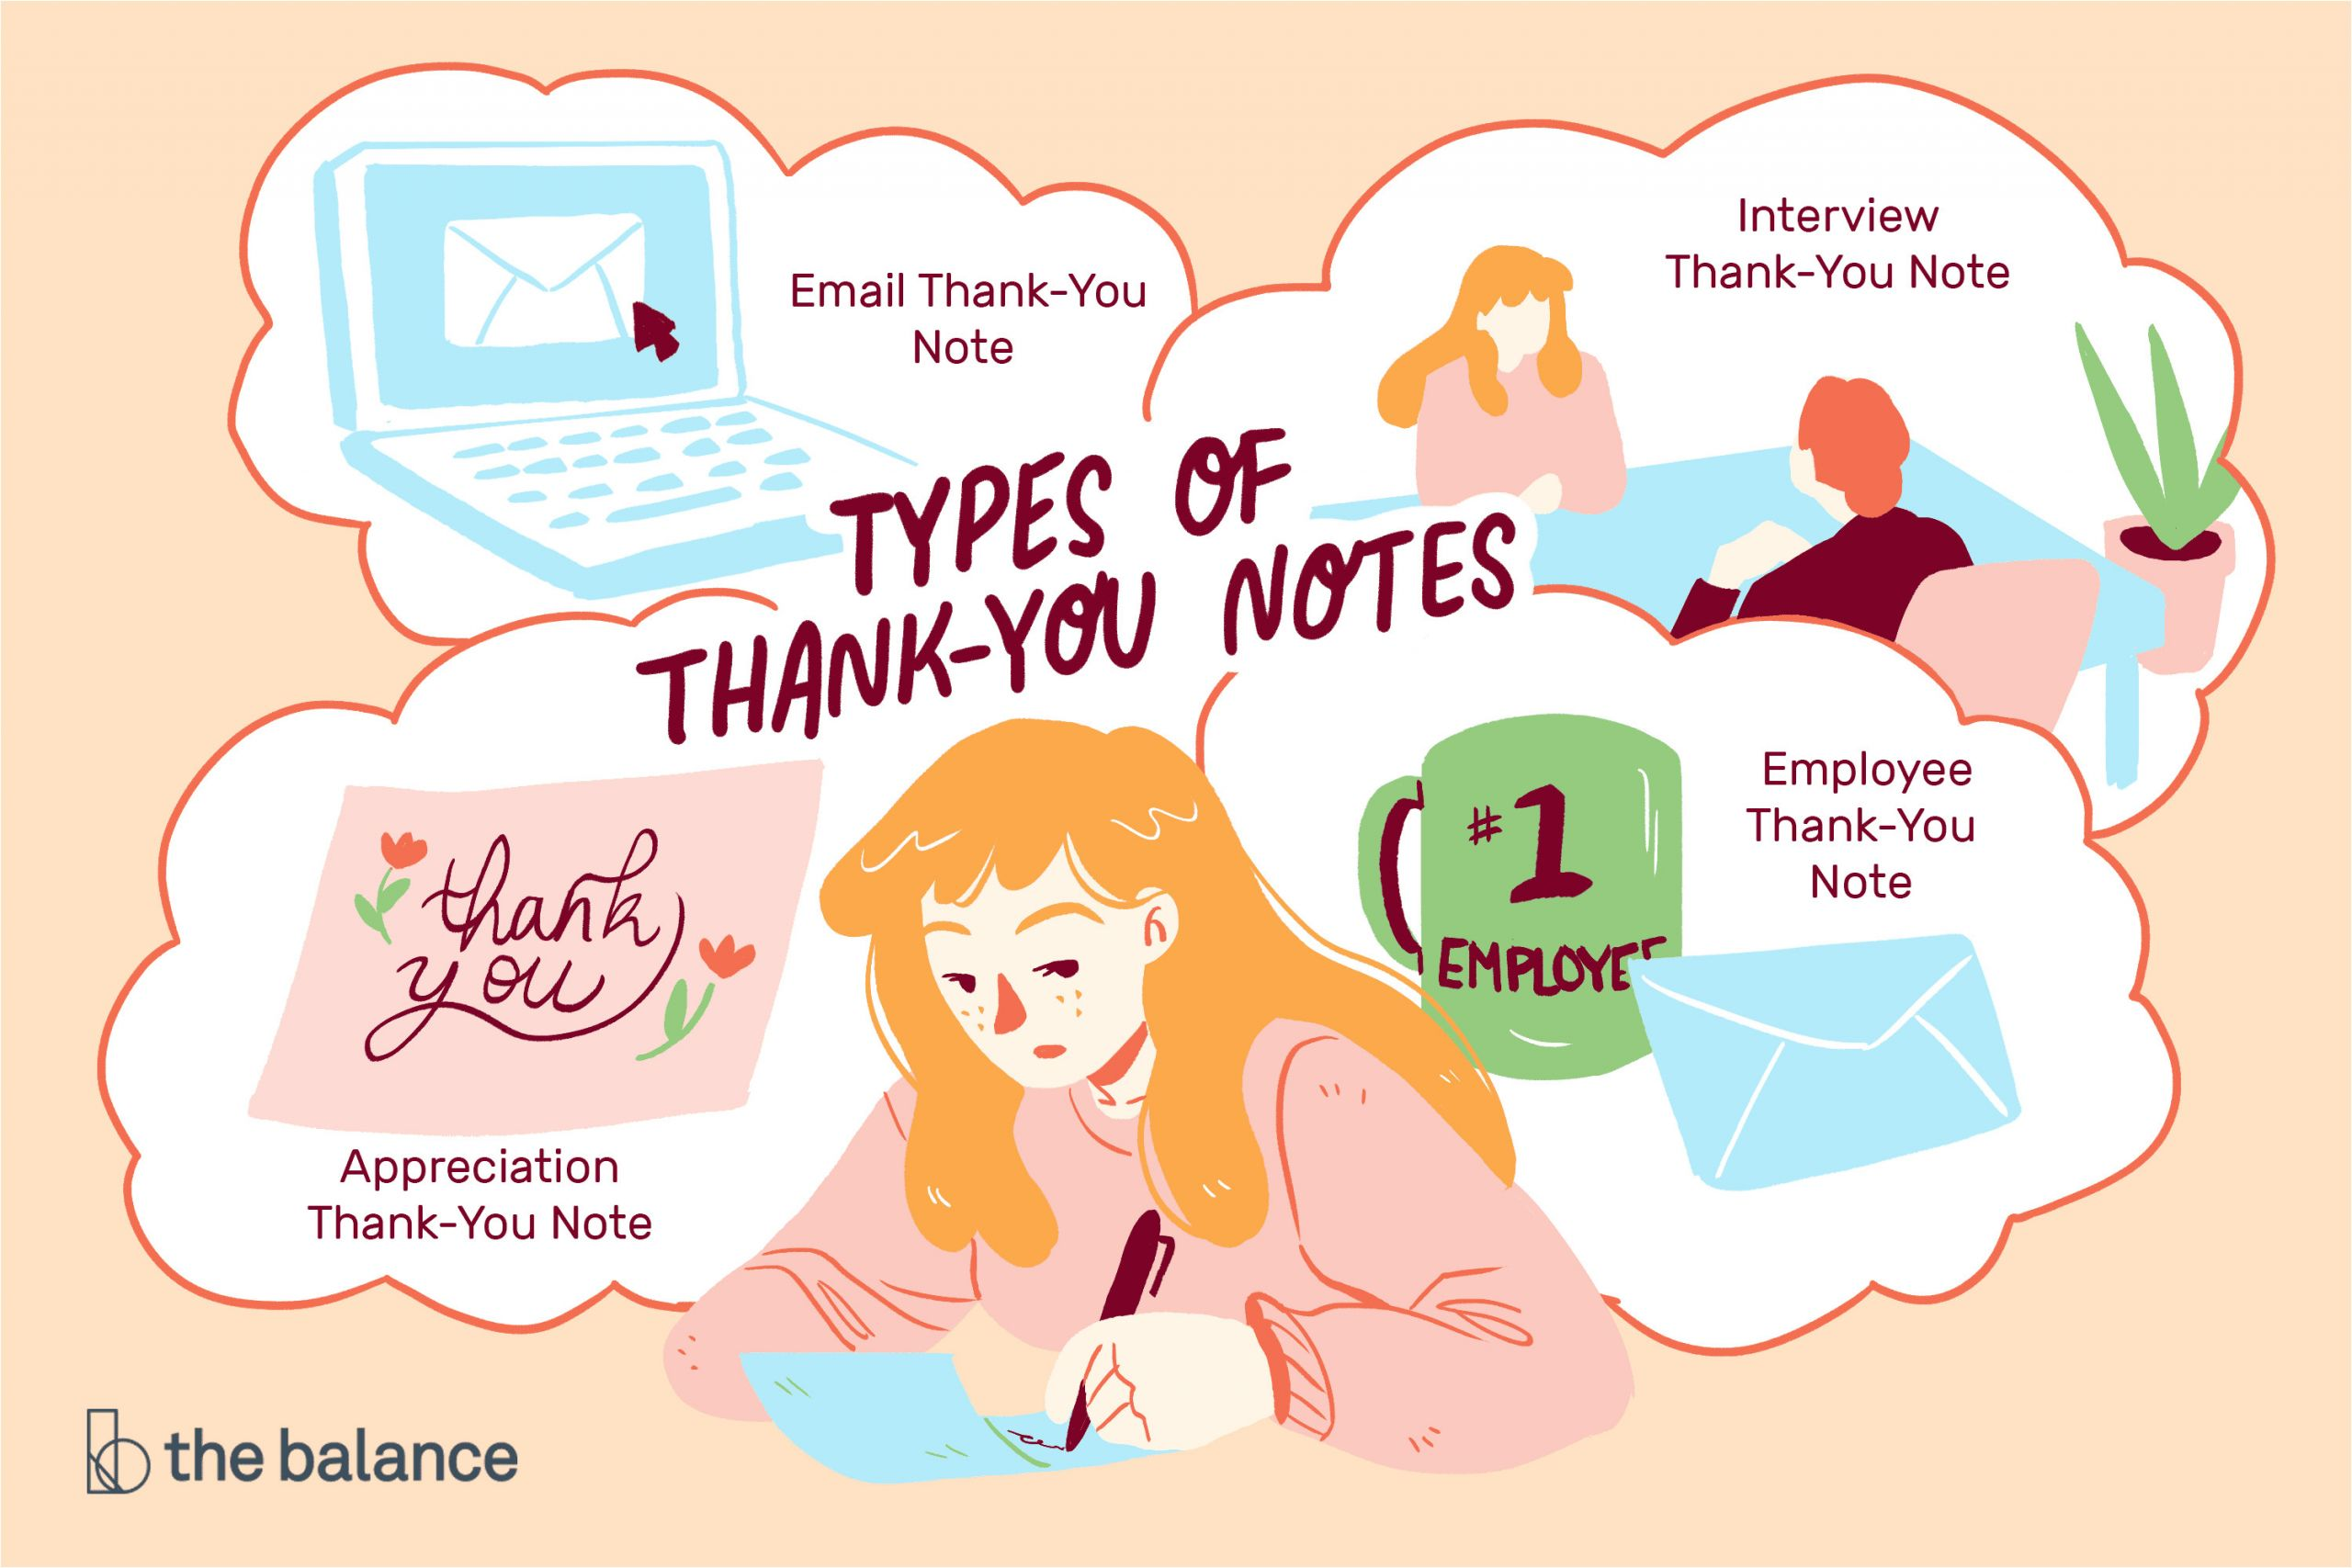 sample thank you notes and email messages 2064015 final1 5c536e3246e0fb0001be5f4c png